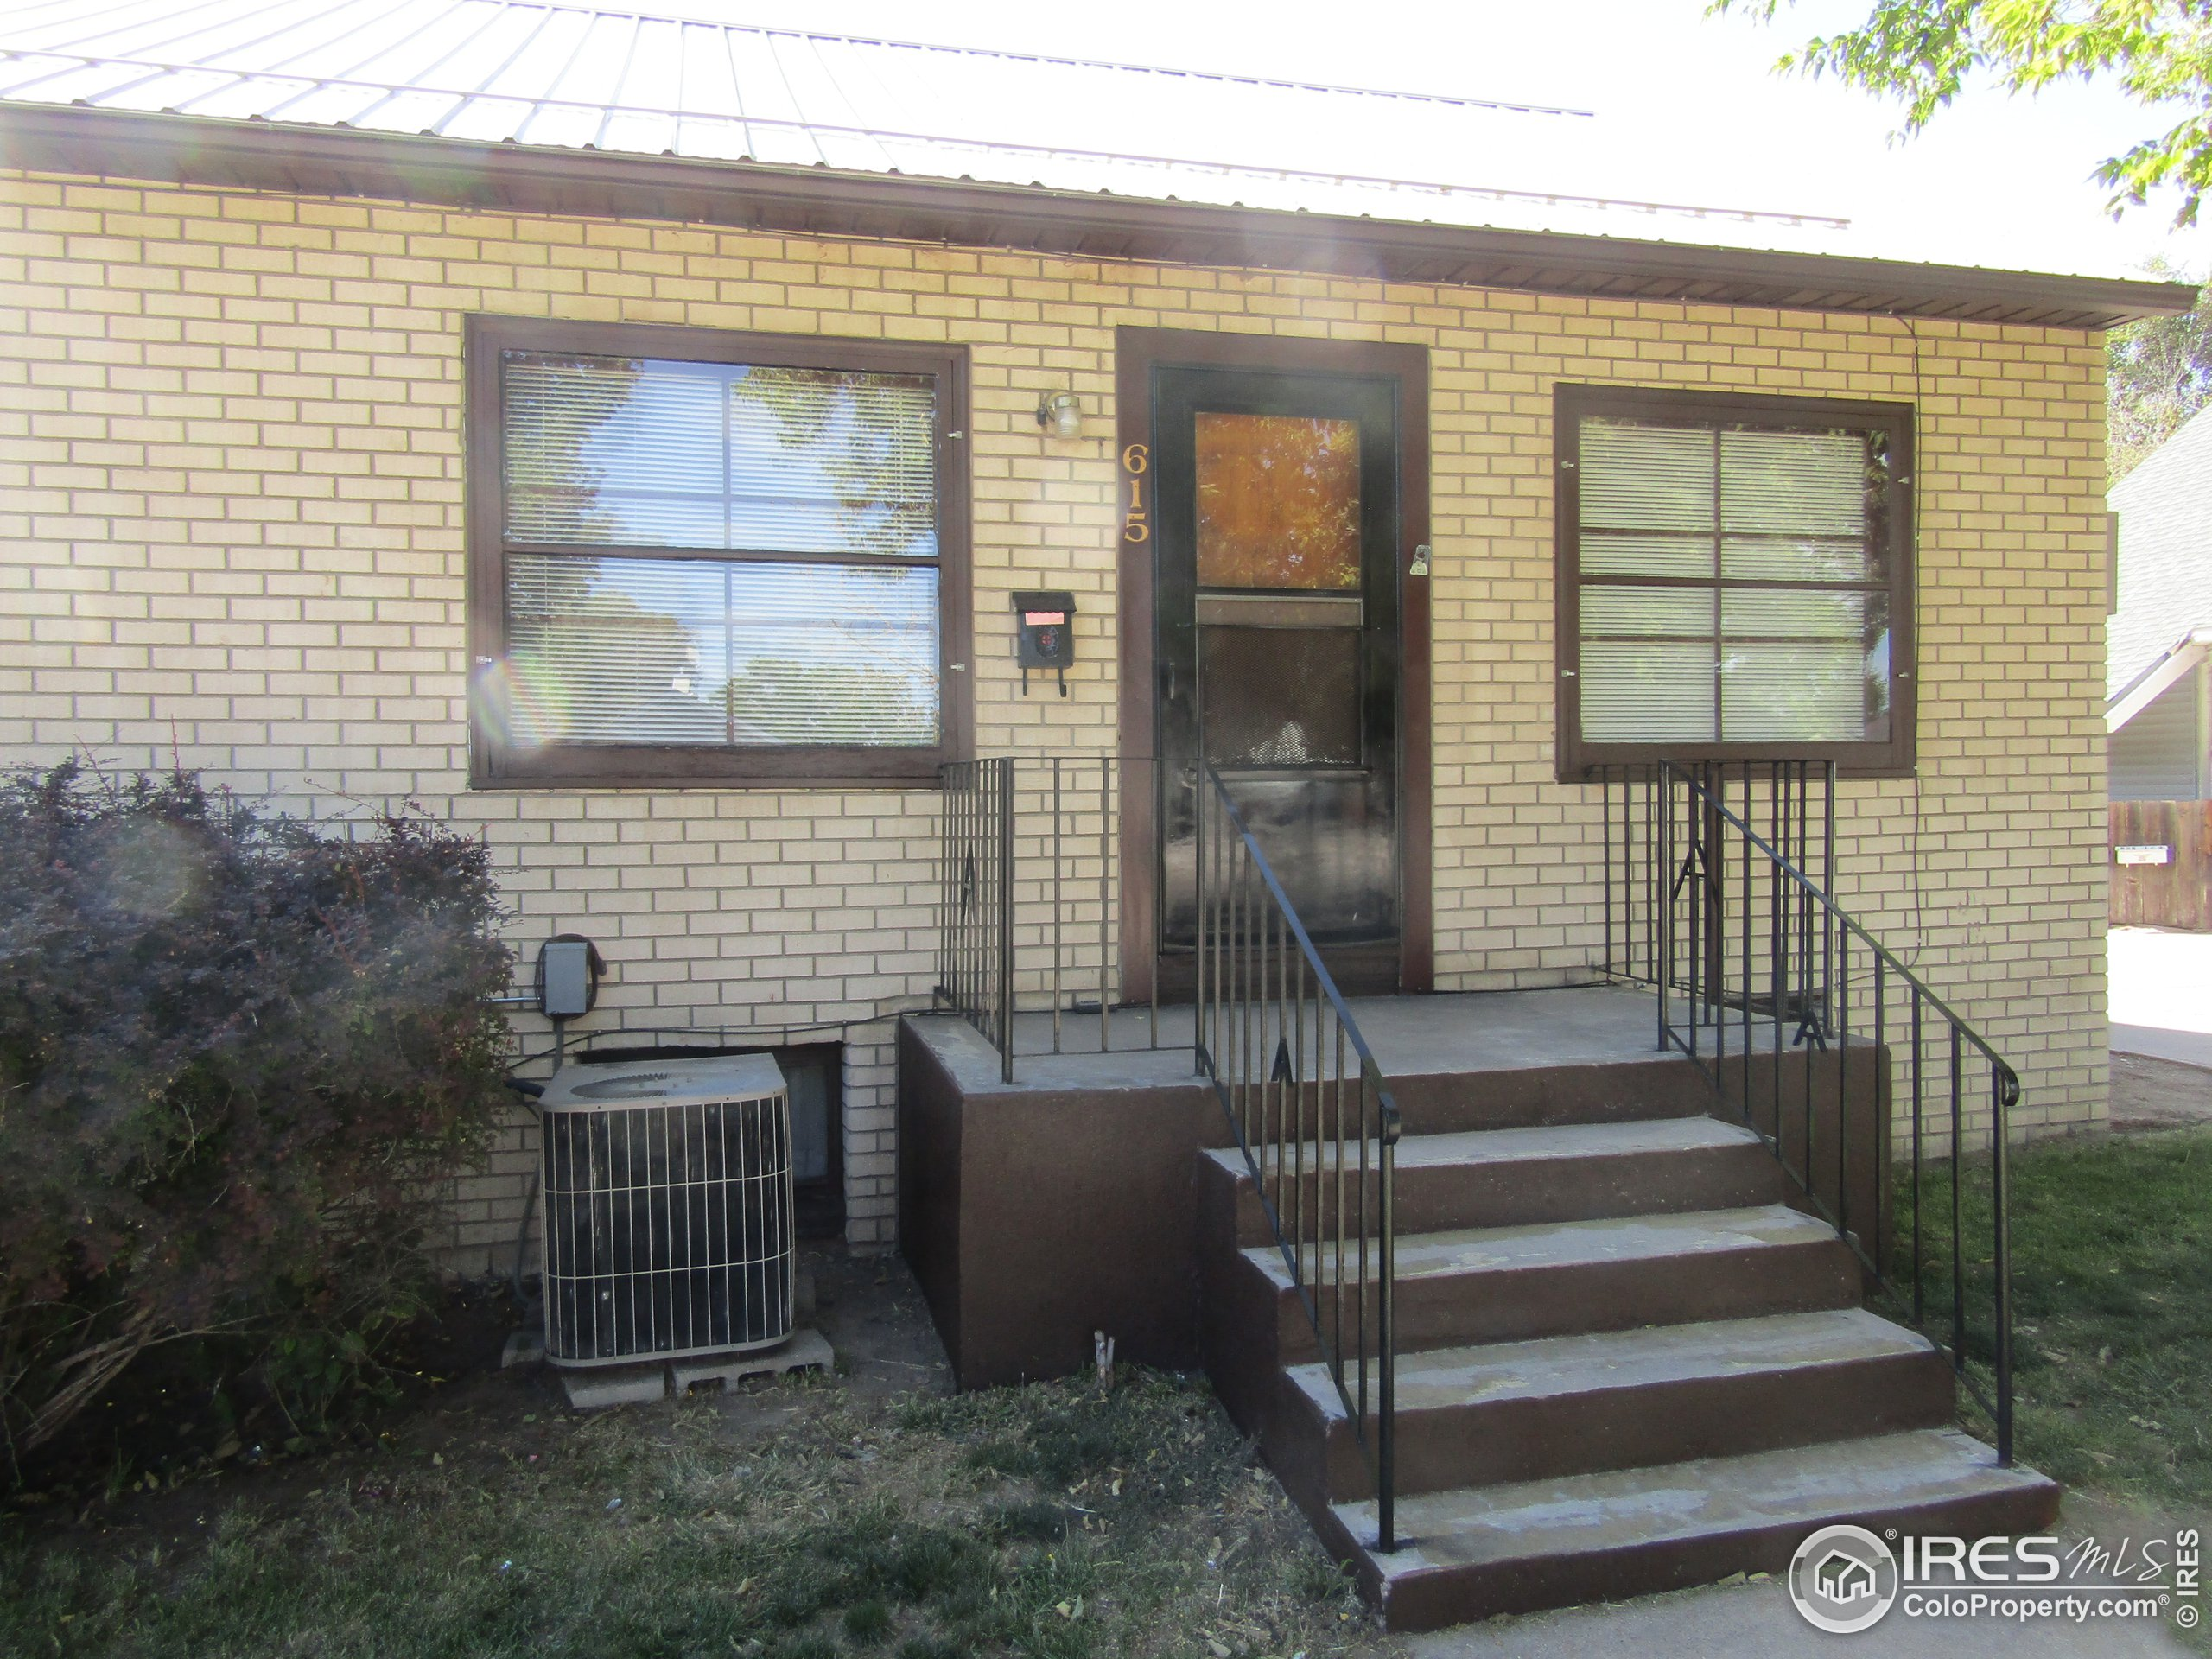 Central air unit/nice front steps